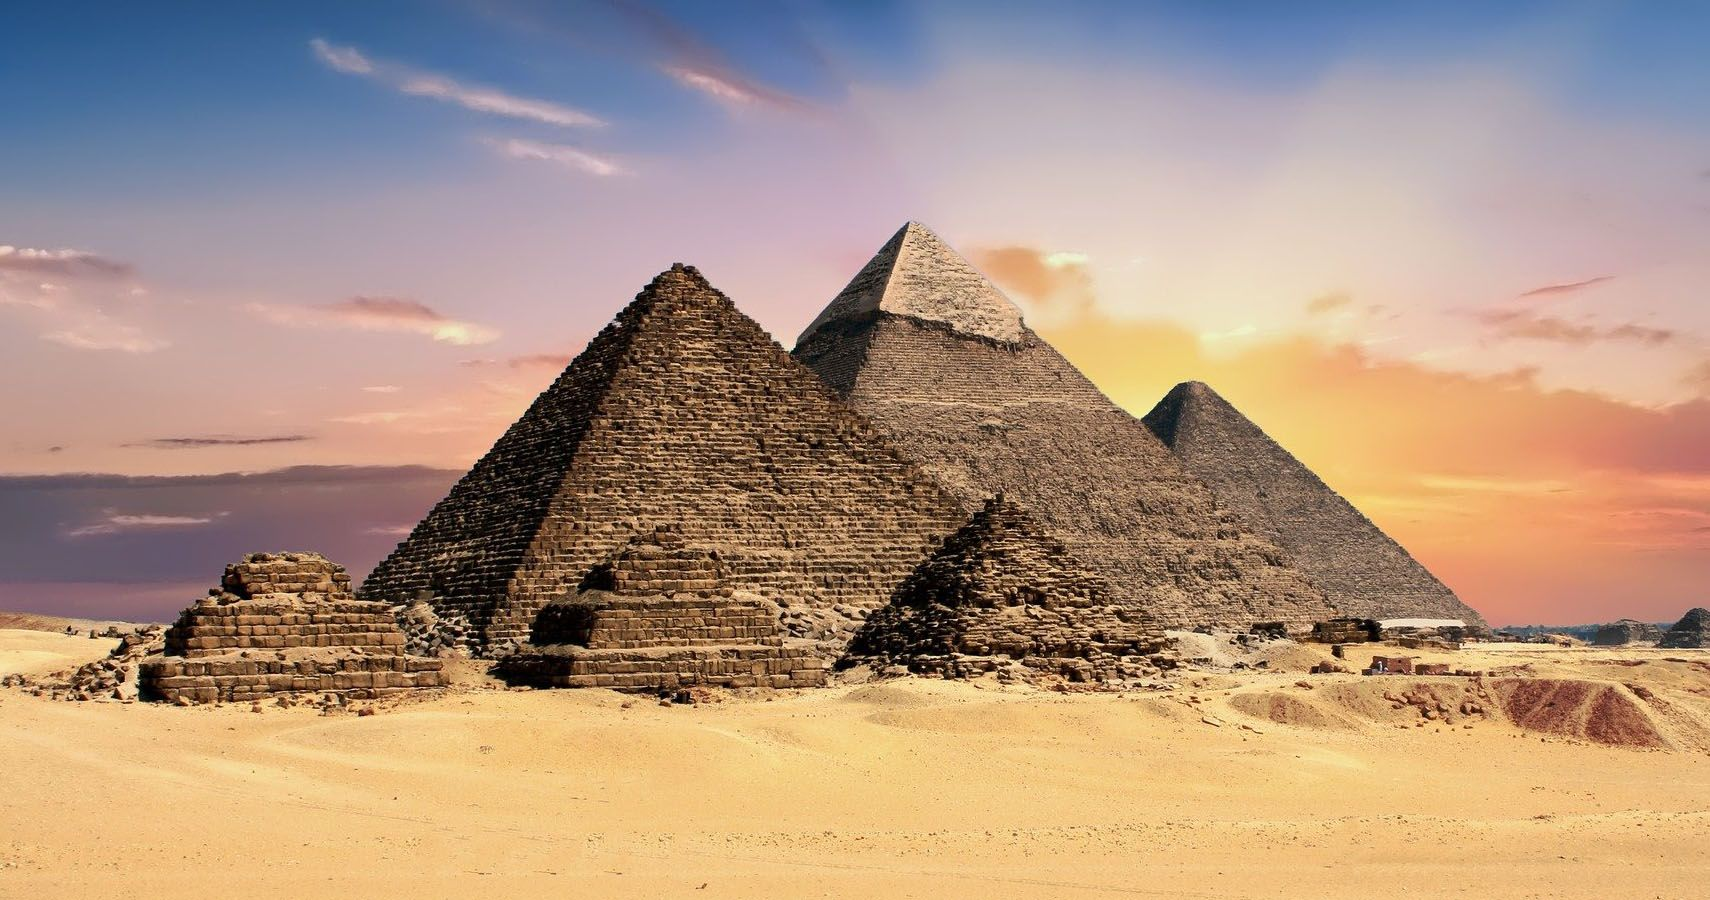 Building The Great Pyramids Of Giza Would Cost Crazy Amounts Today